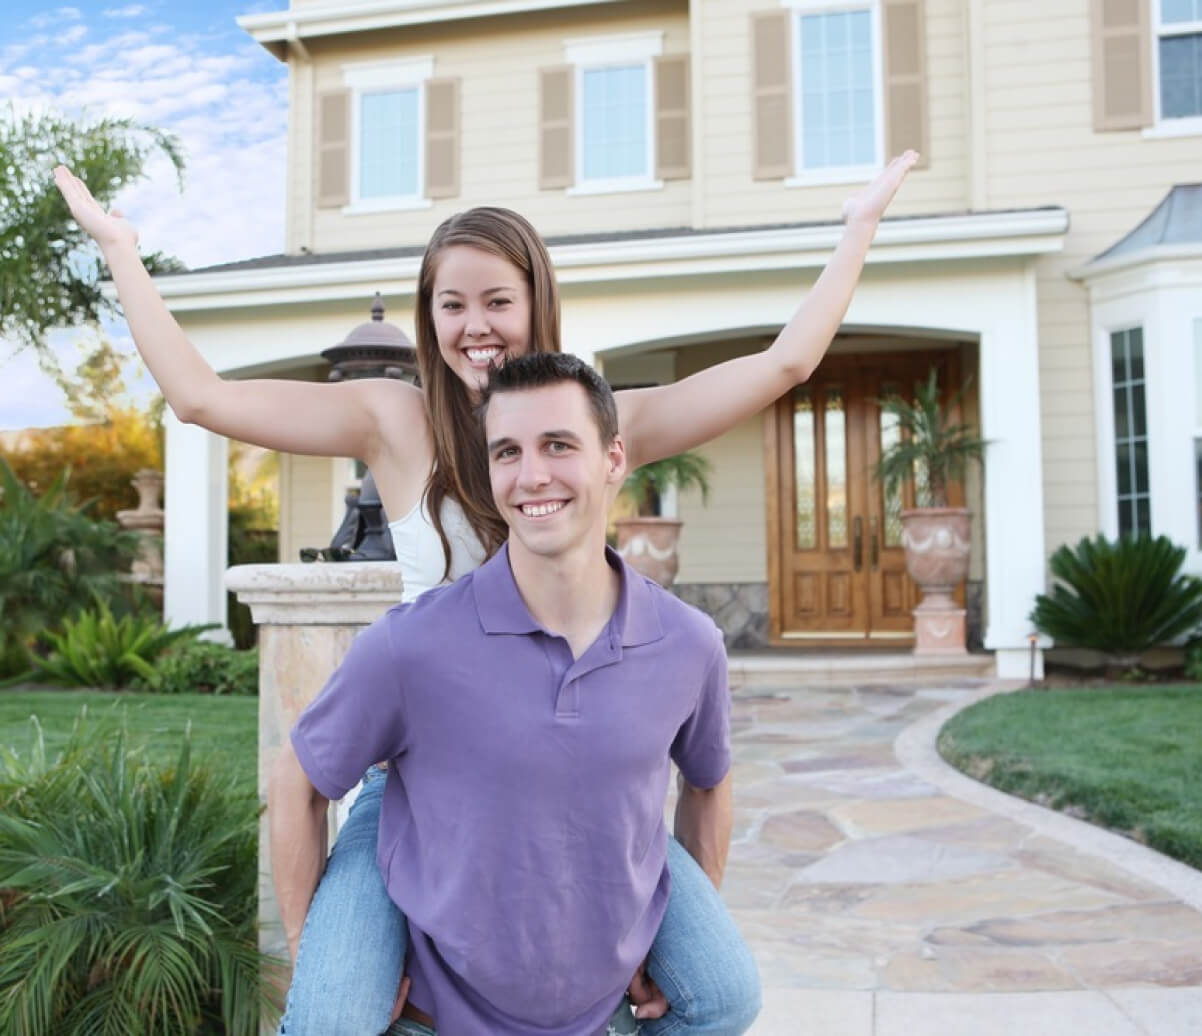 Happy couple in front of a house